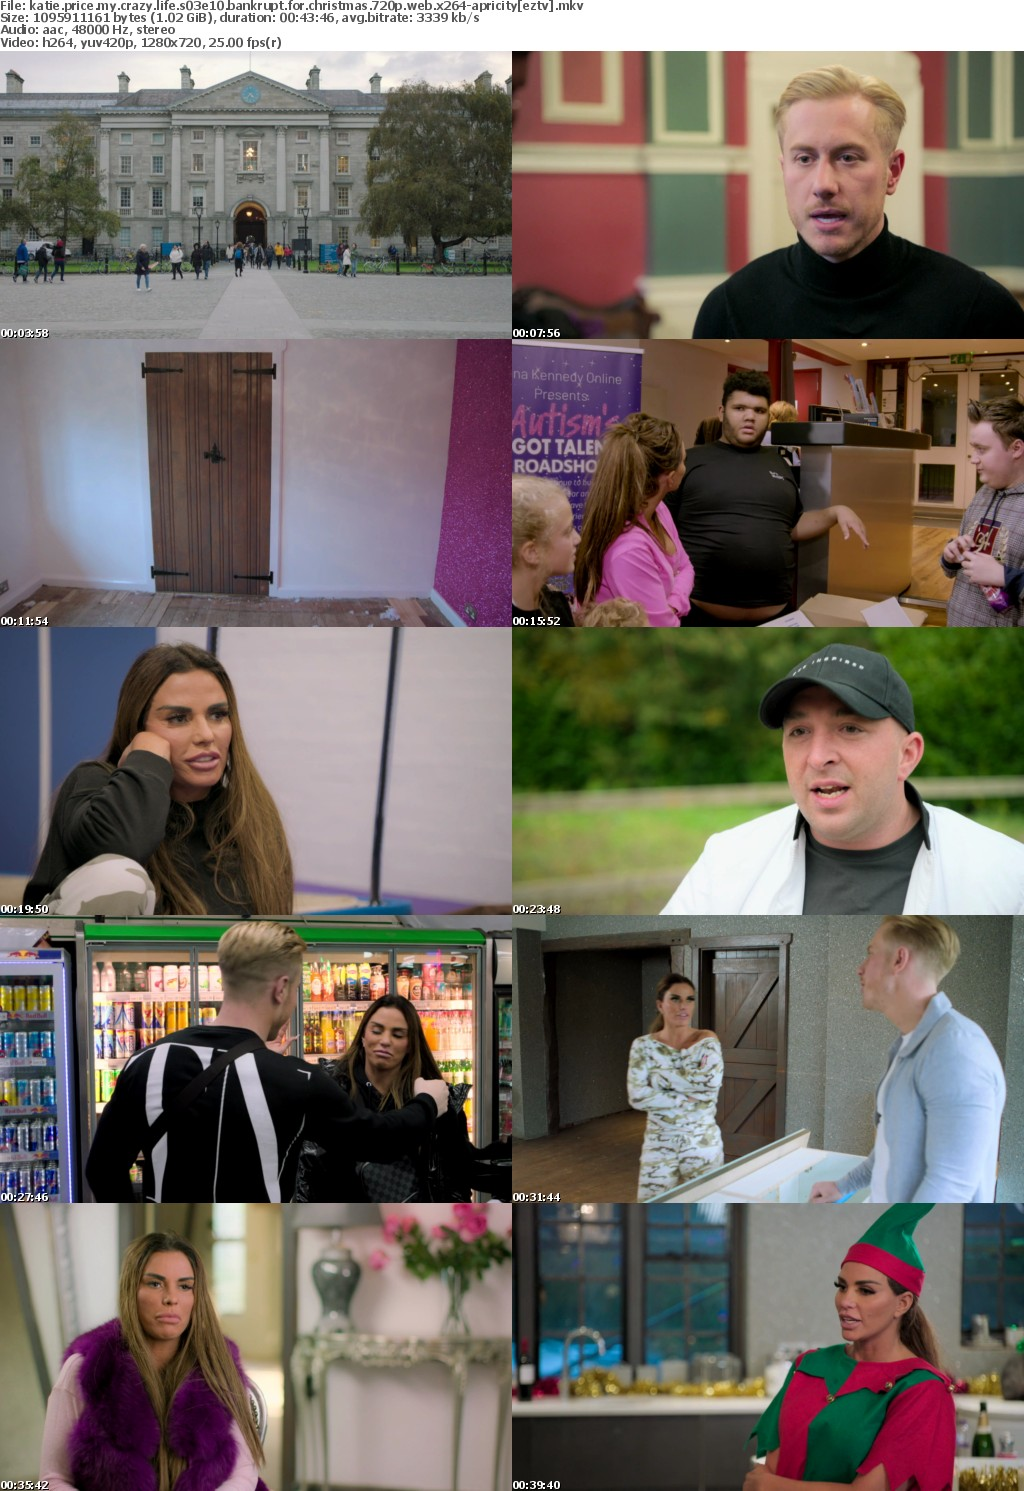 Katie Price My Crazy Life S03E10 Bankrupt For Christmas 720p WEB x264-APRiCiTY